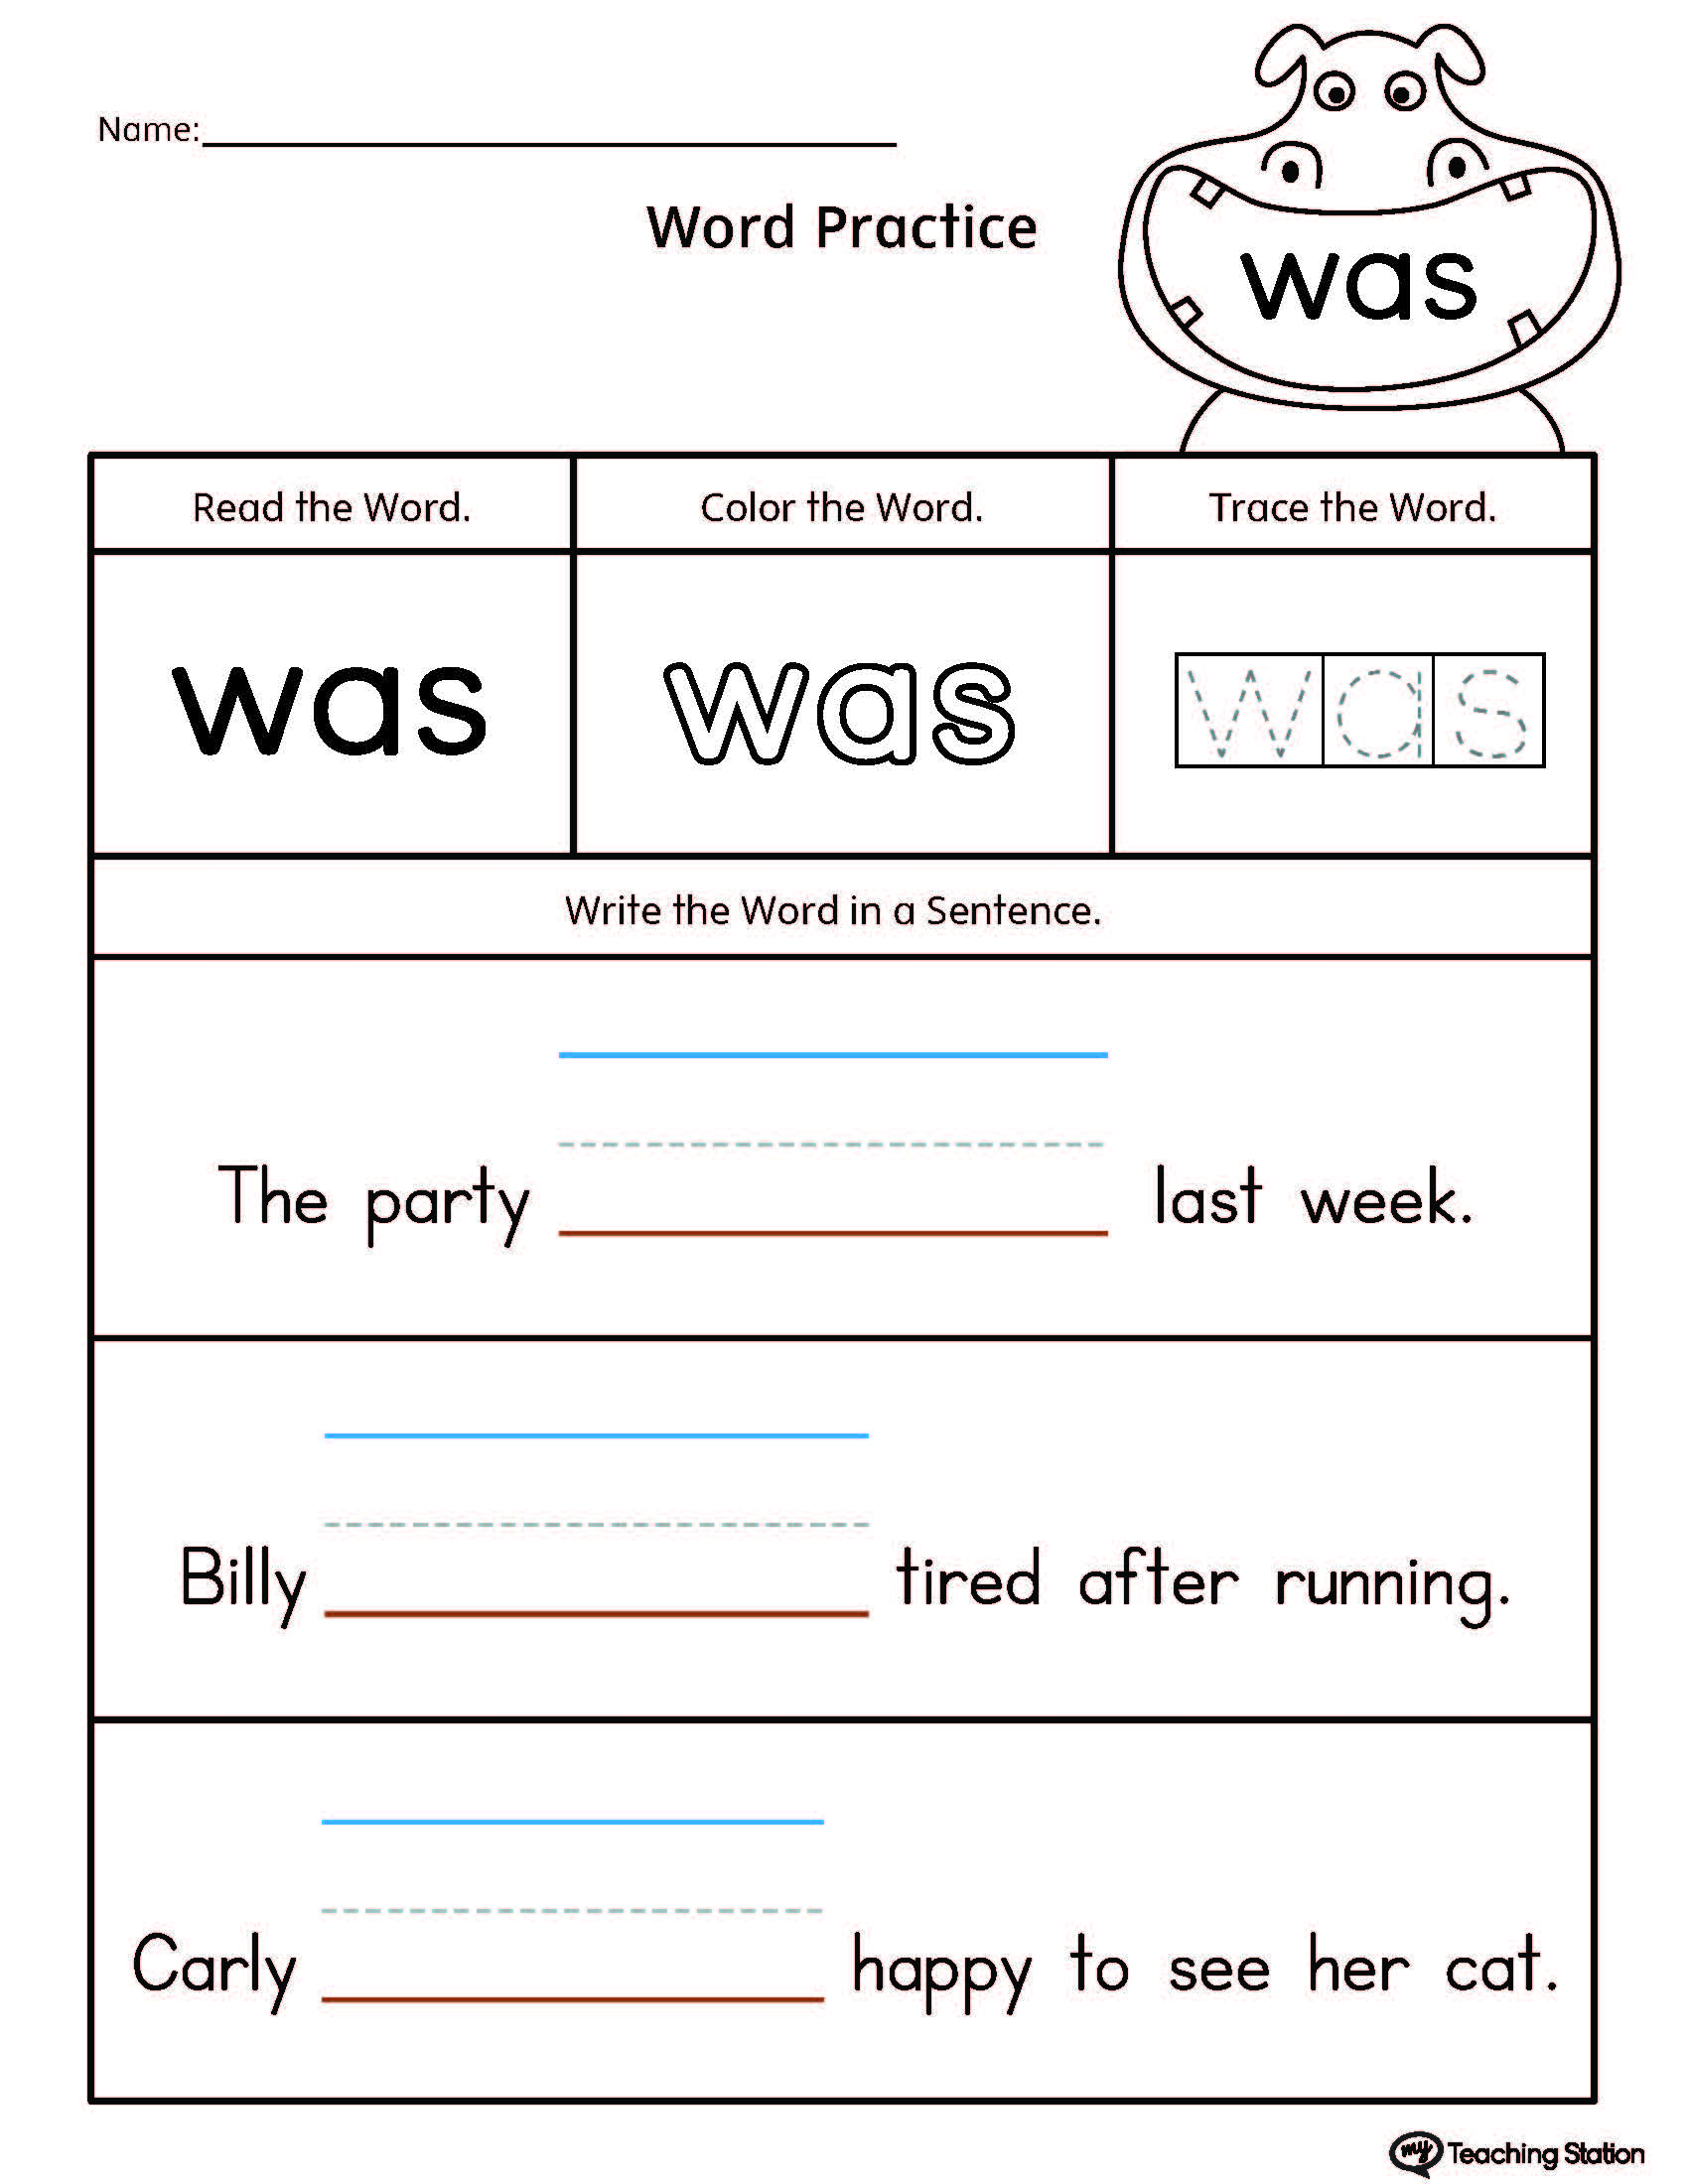 Worksheets Building Sentences Worksheets build sentences using sight word was myteachingstation com downloadfree worksheet